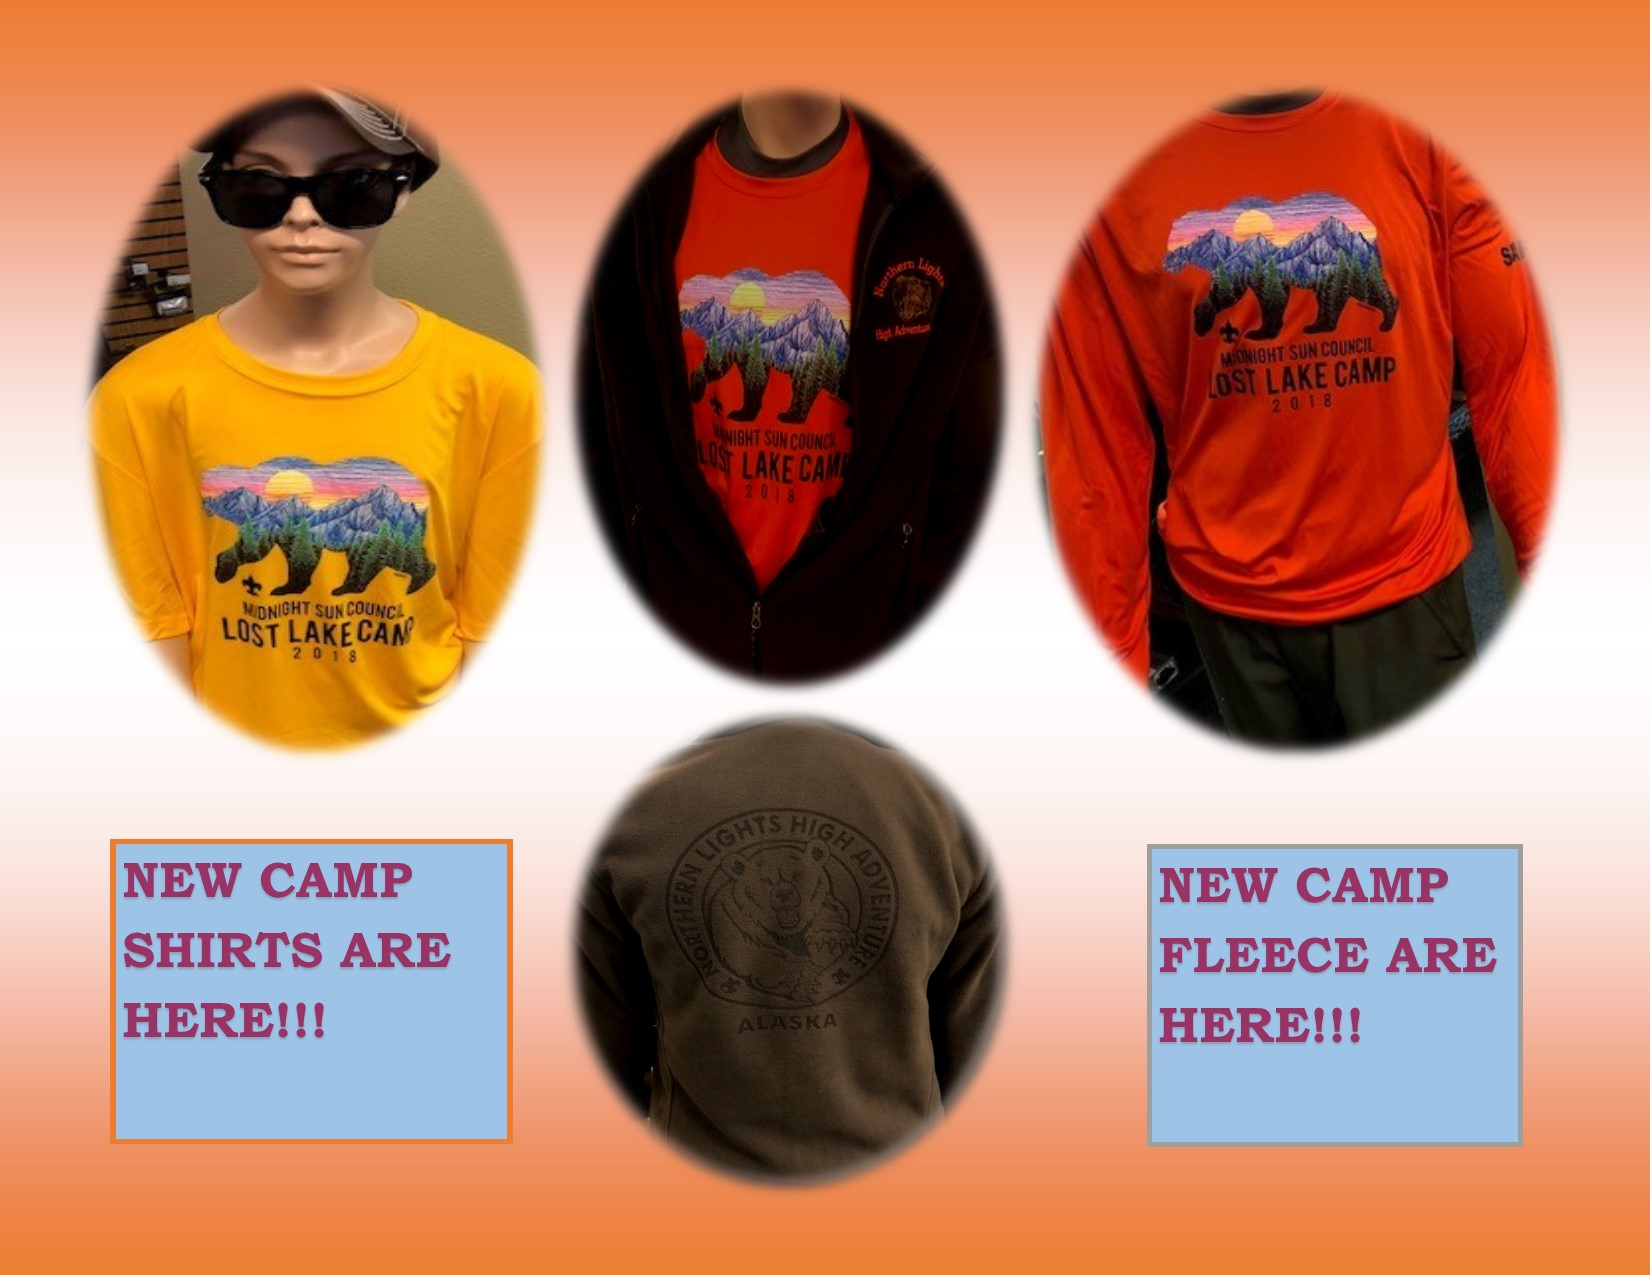 New Camp Shirts